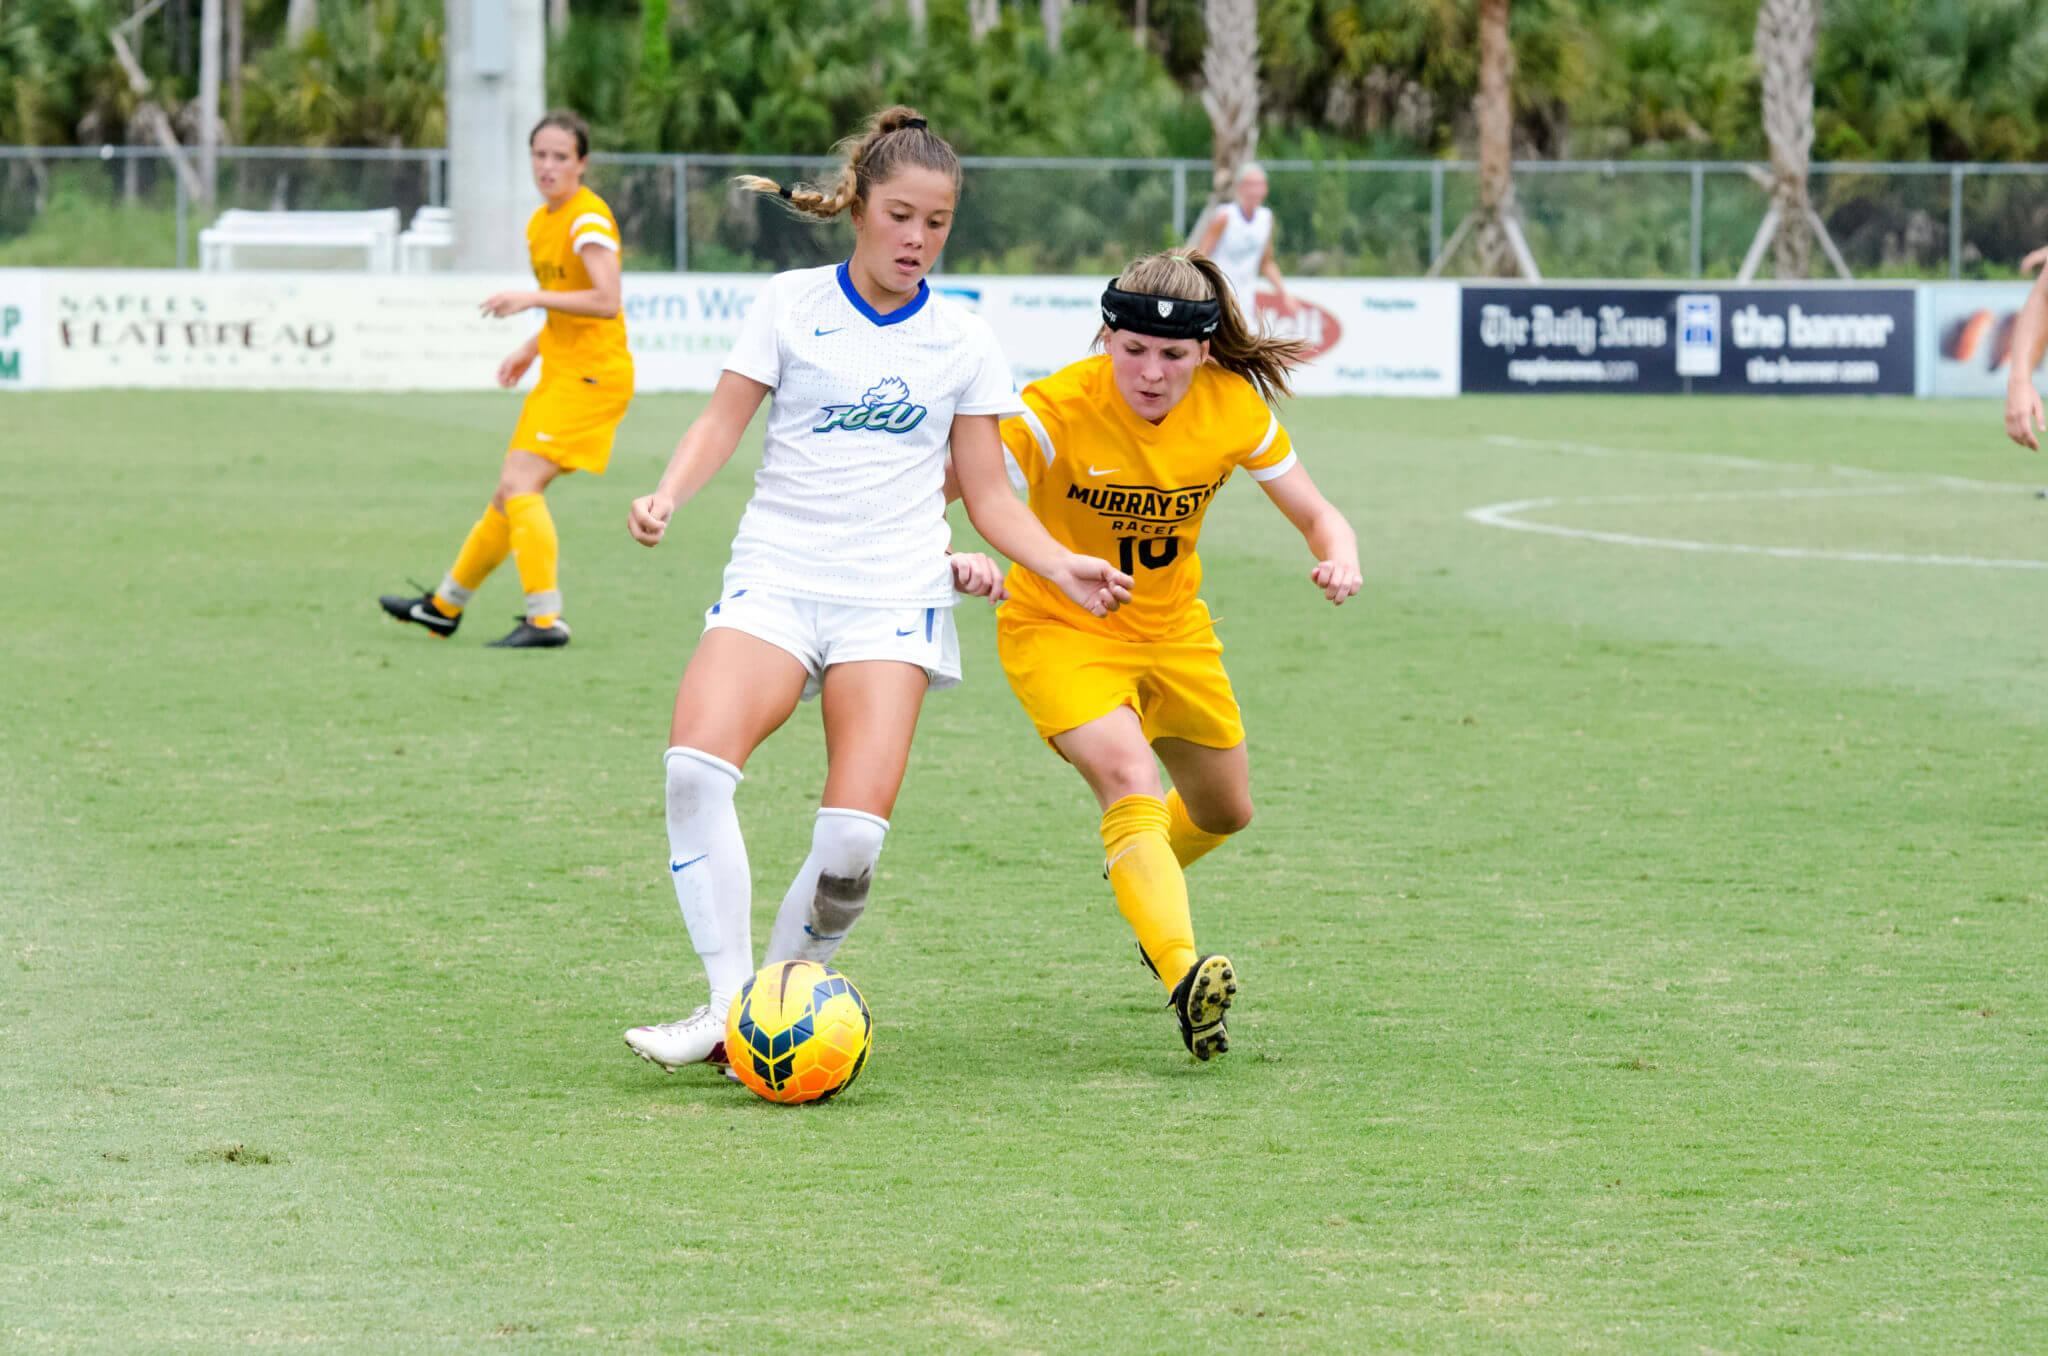 Eagles face Aggies after earning two shutouts